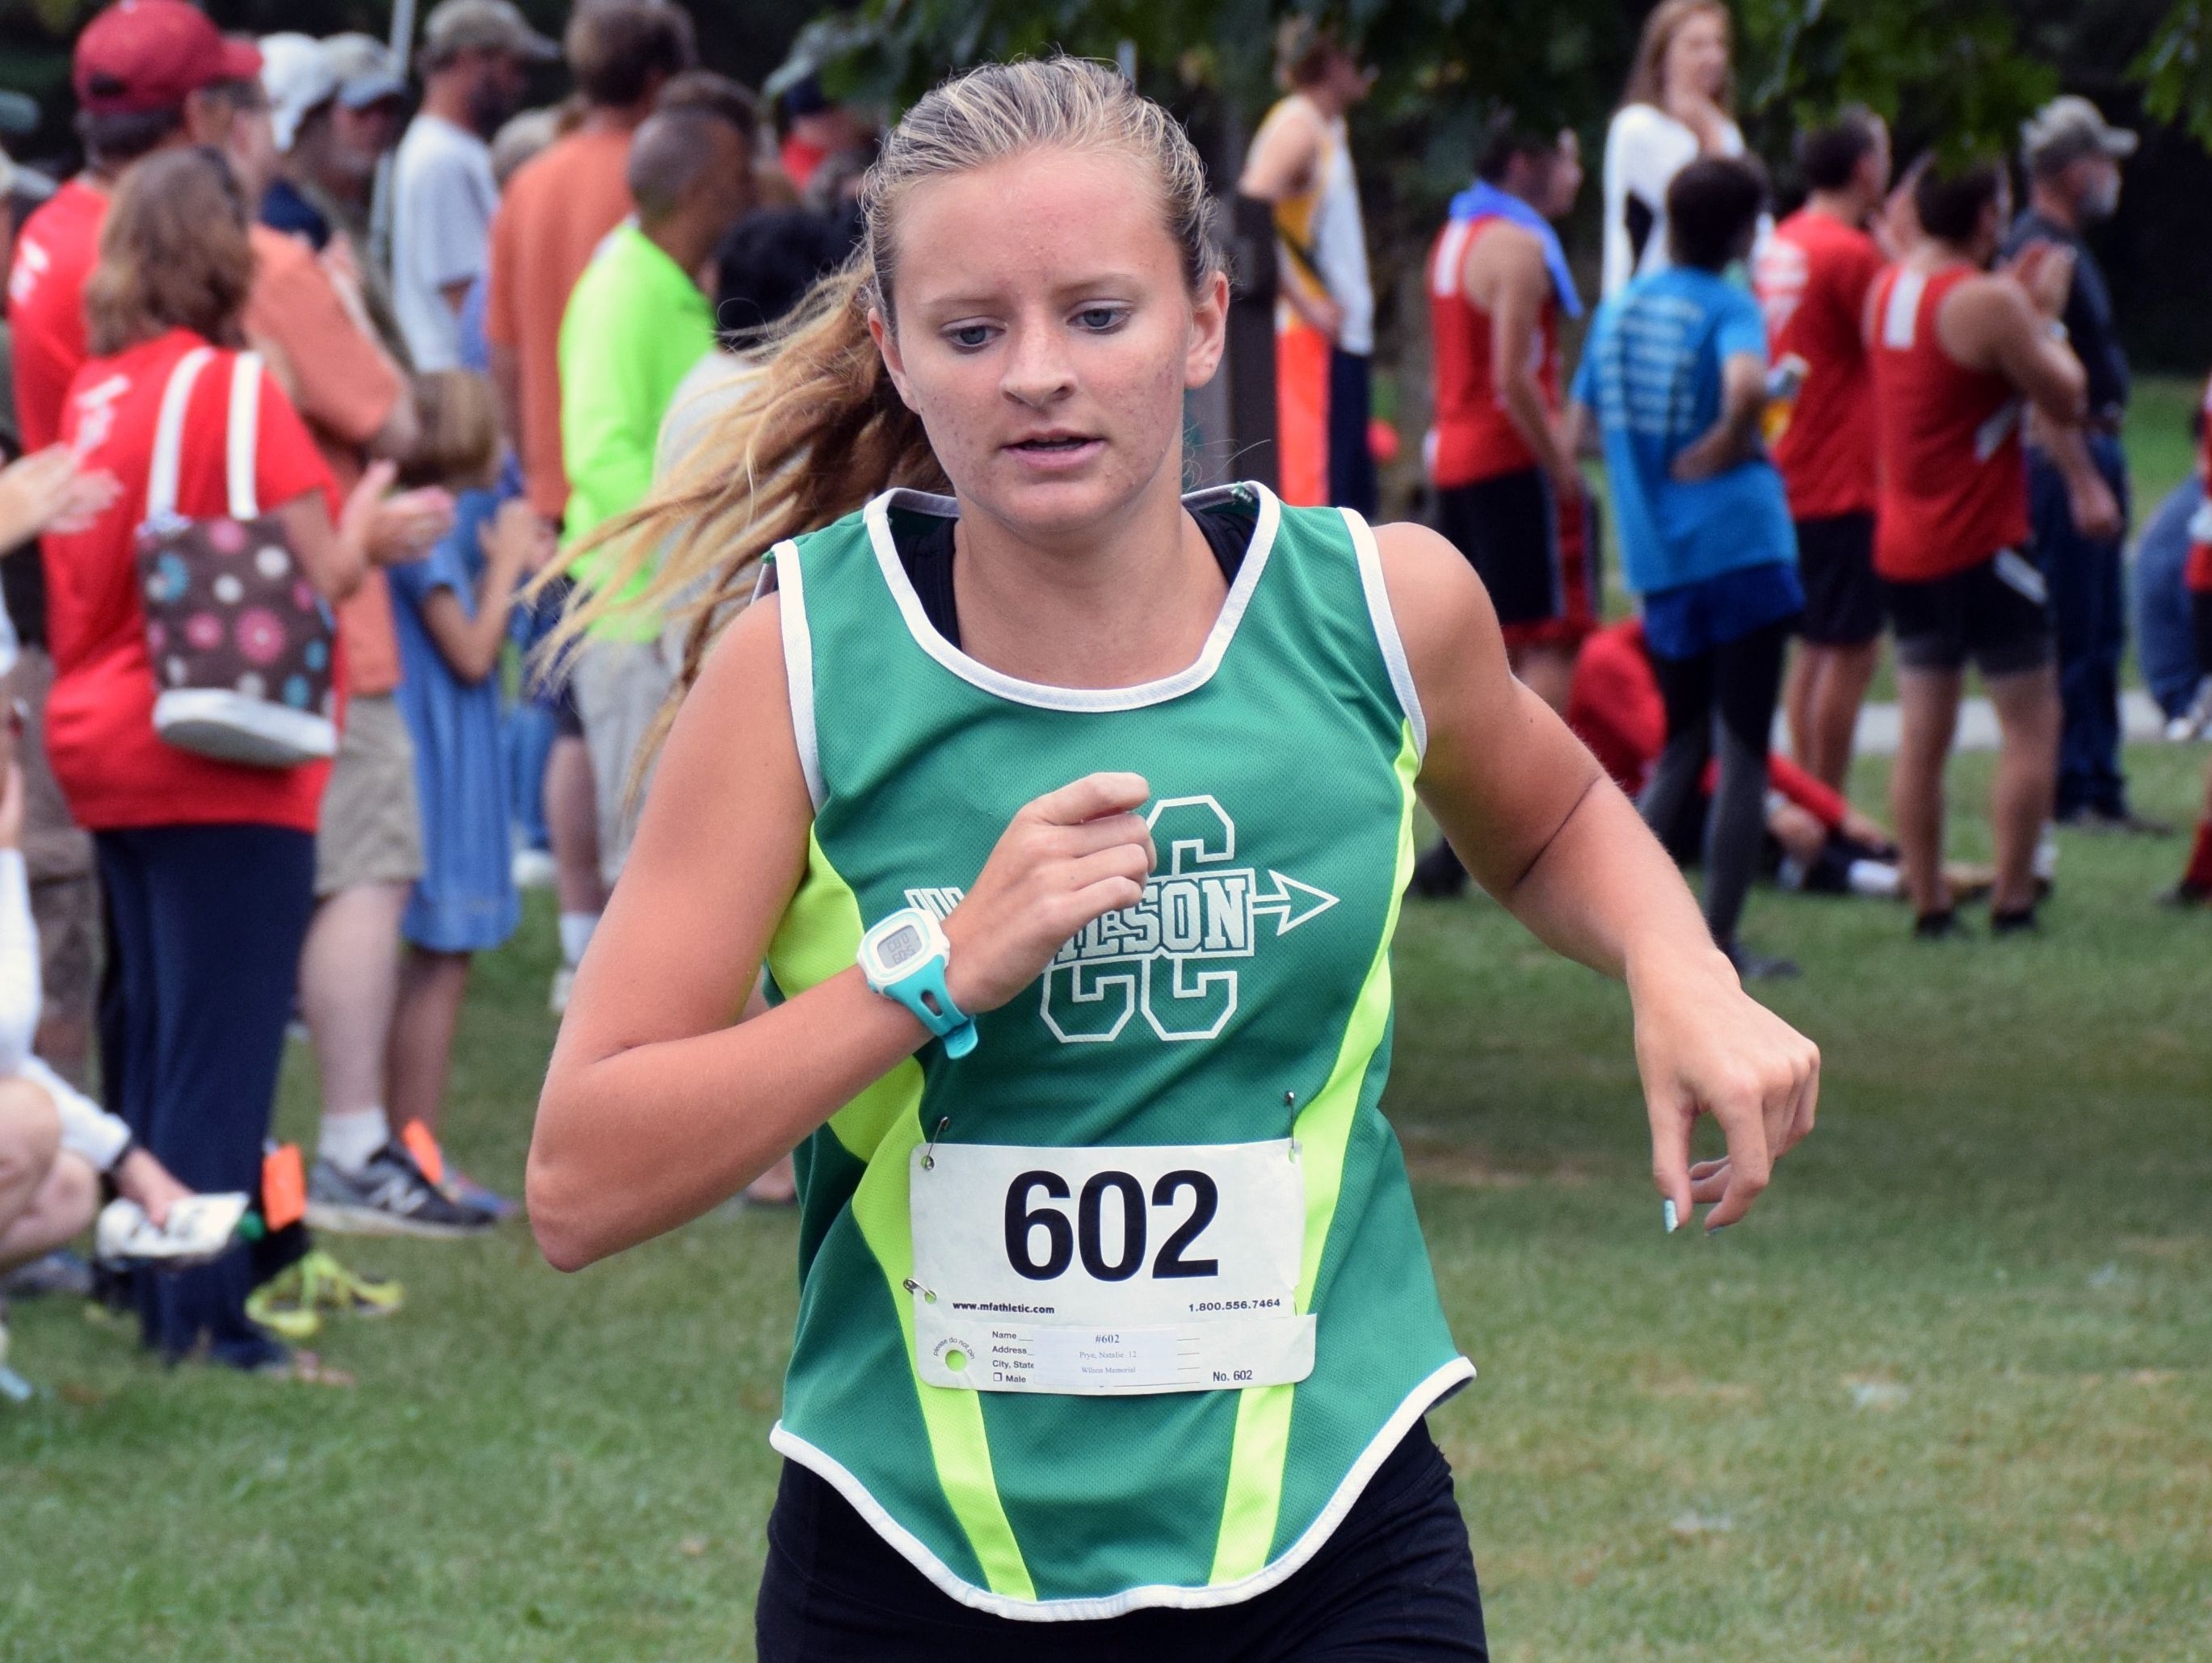 Wilson Memorial's Natalie Prye maintains her lead during the varsity girls race at the Augusta County Cross Country Invitational at Wilson Workforce and Rehabilitation Center in Fishersville, Va., on Saturday, Sept. 17, 2016. Prye went on to win the race.